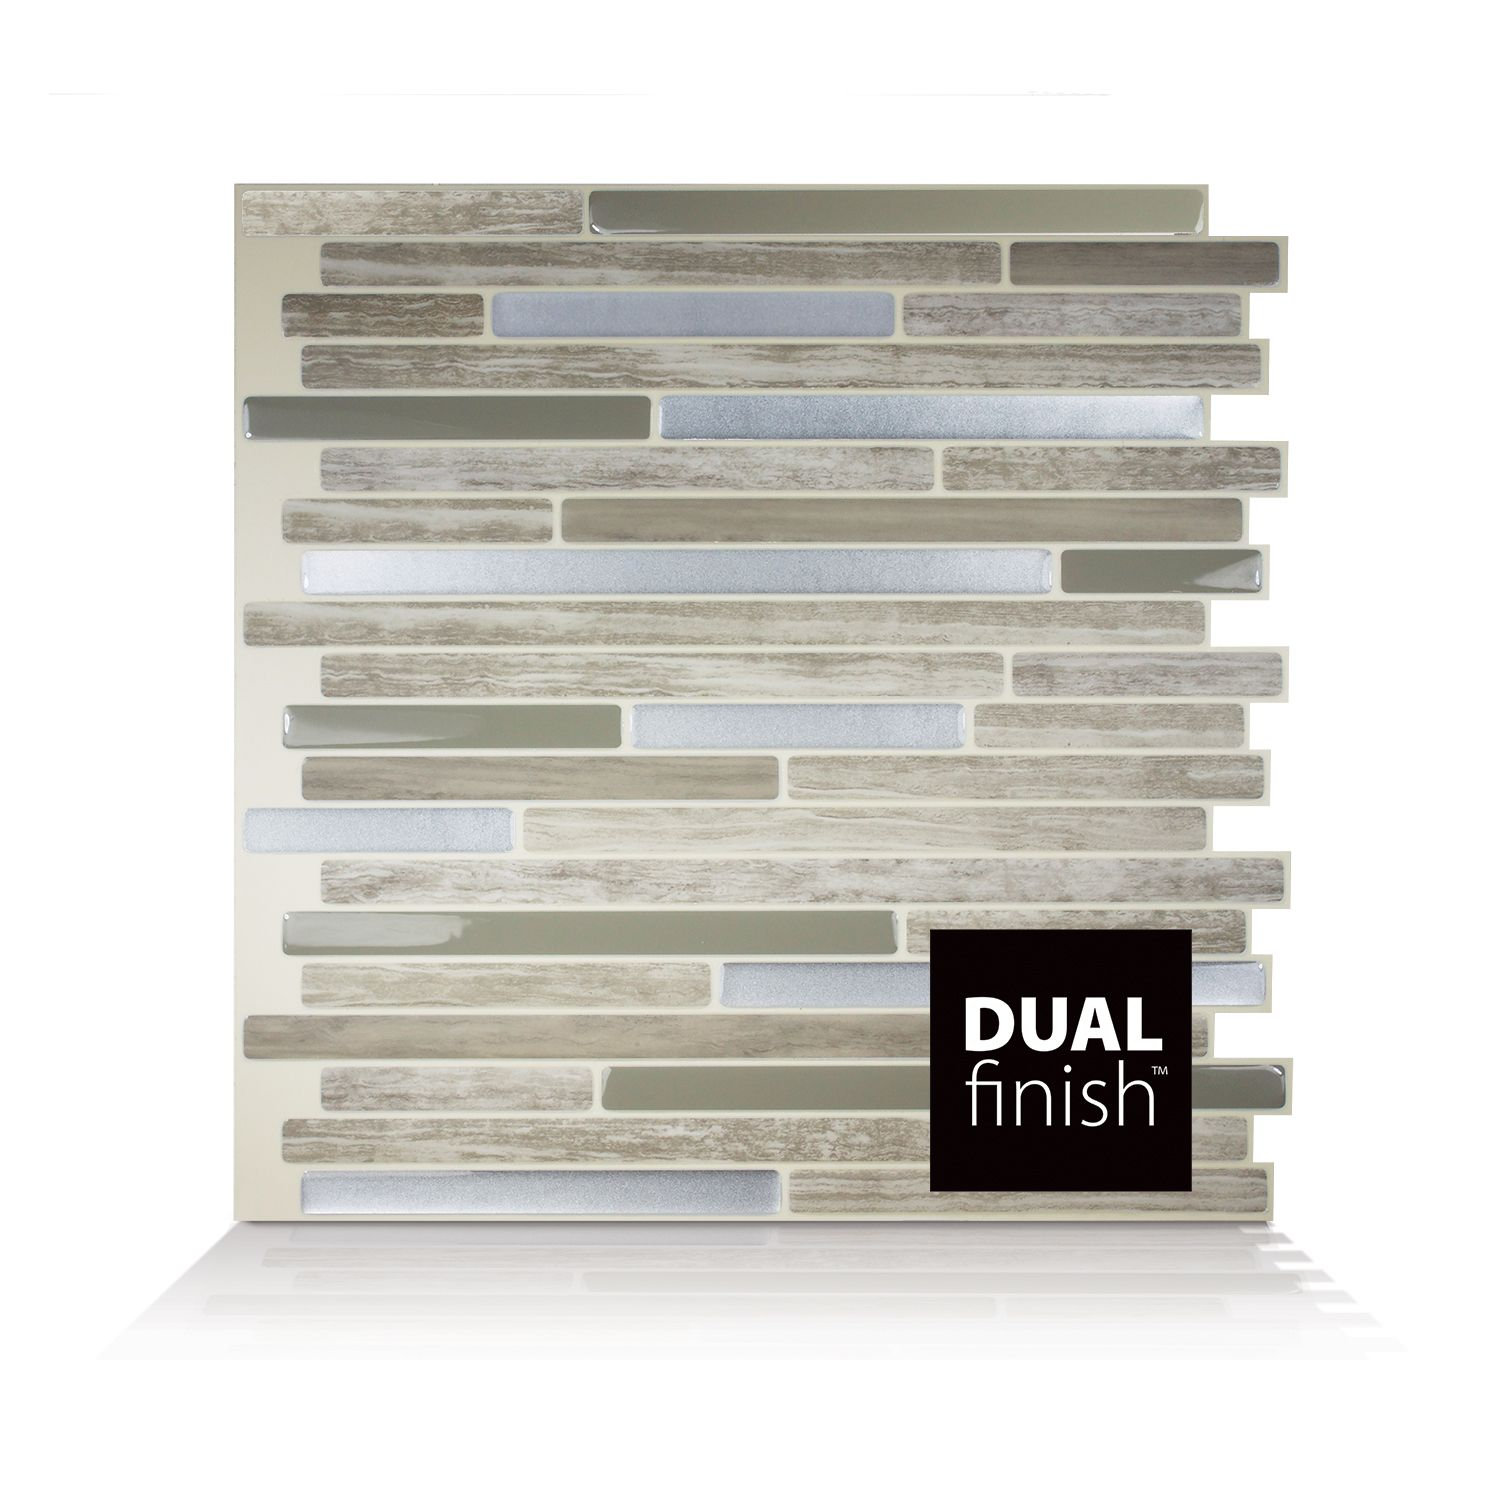 Smart Tiles Mosaik Capri Taupe Dual X L Stick Mosaic Wall Tile In Beige And